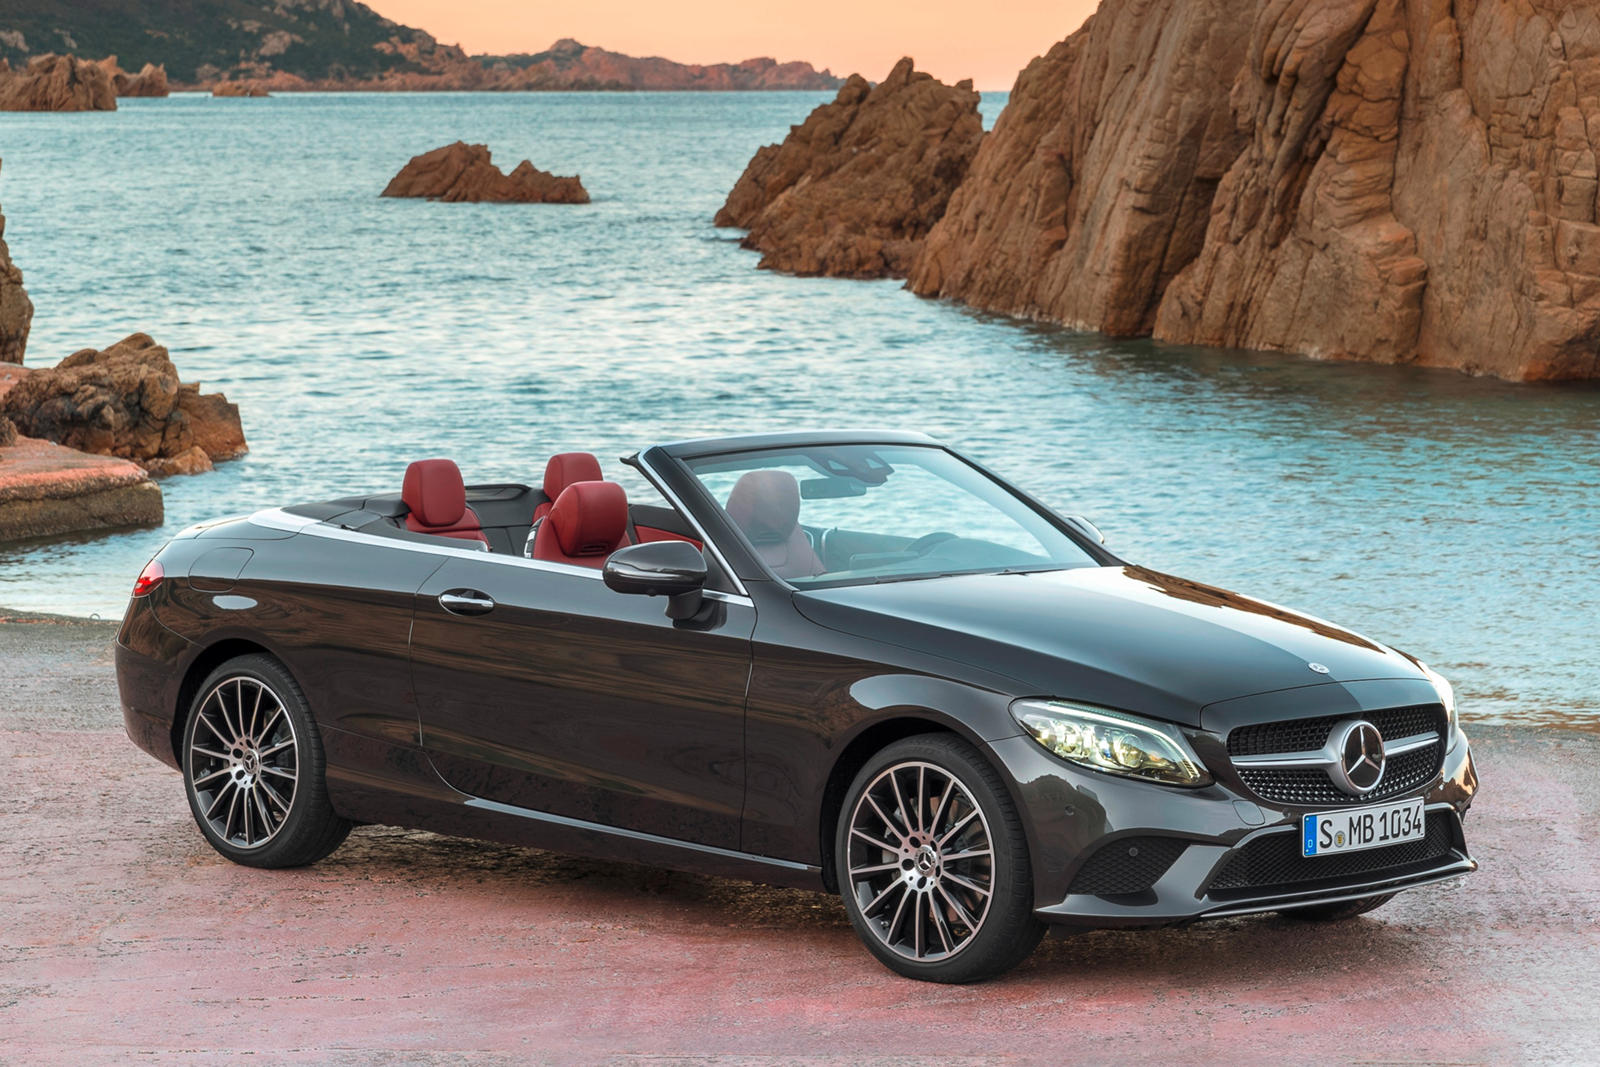 2020 Mercedes Benz C Class Convertible Review Trims Specs Price New Interior Features Exterior Design And Specifications Carbuzz